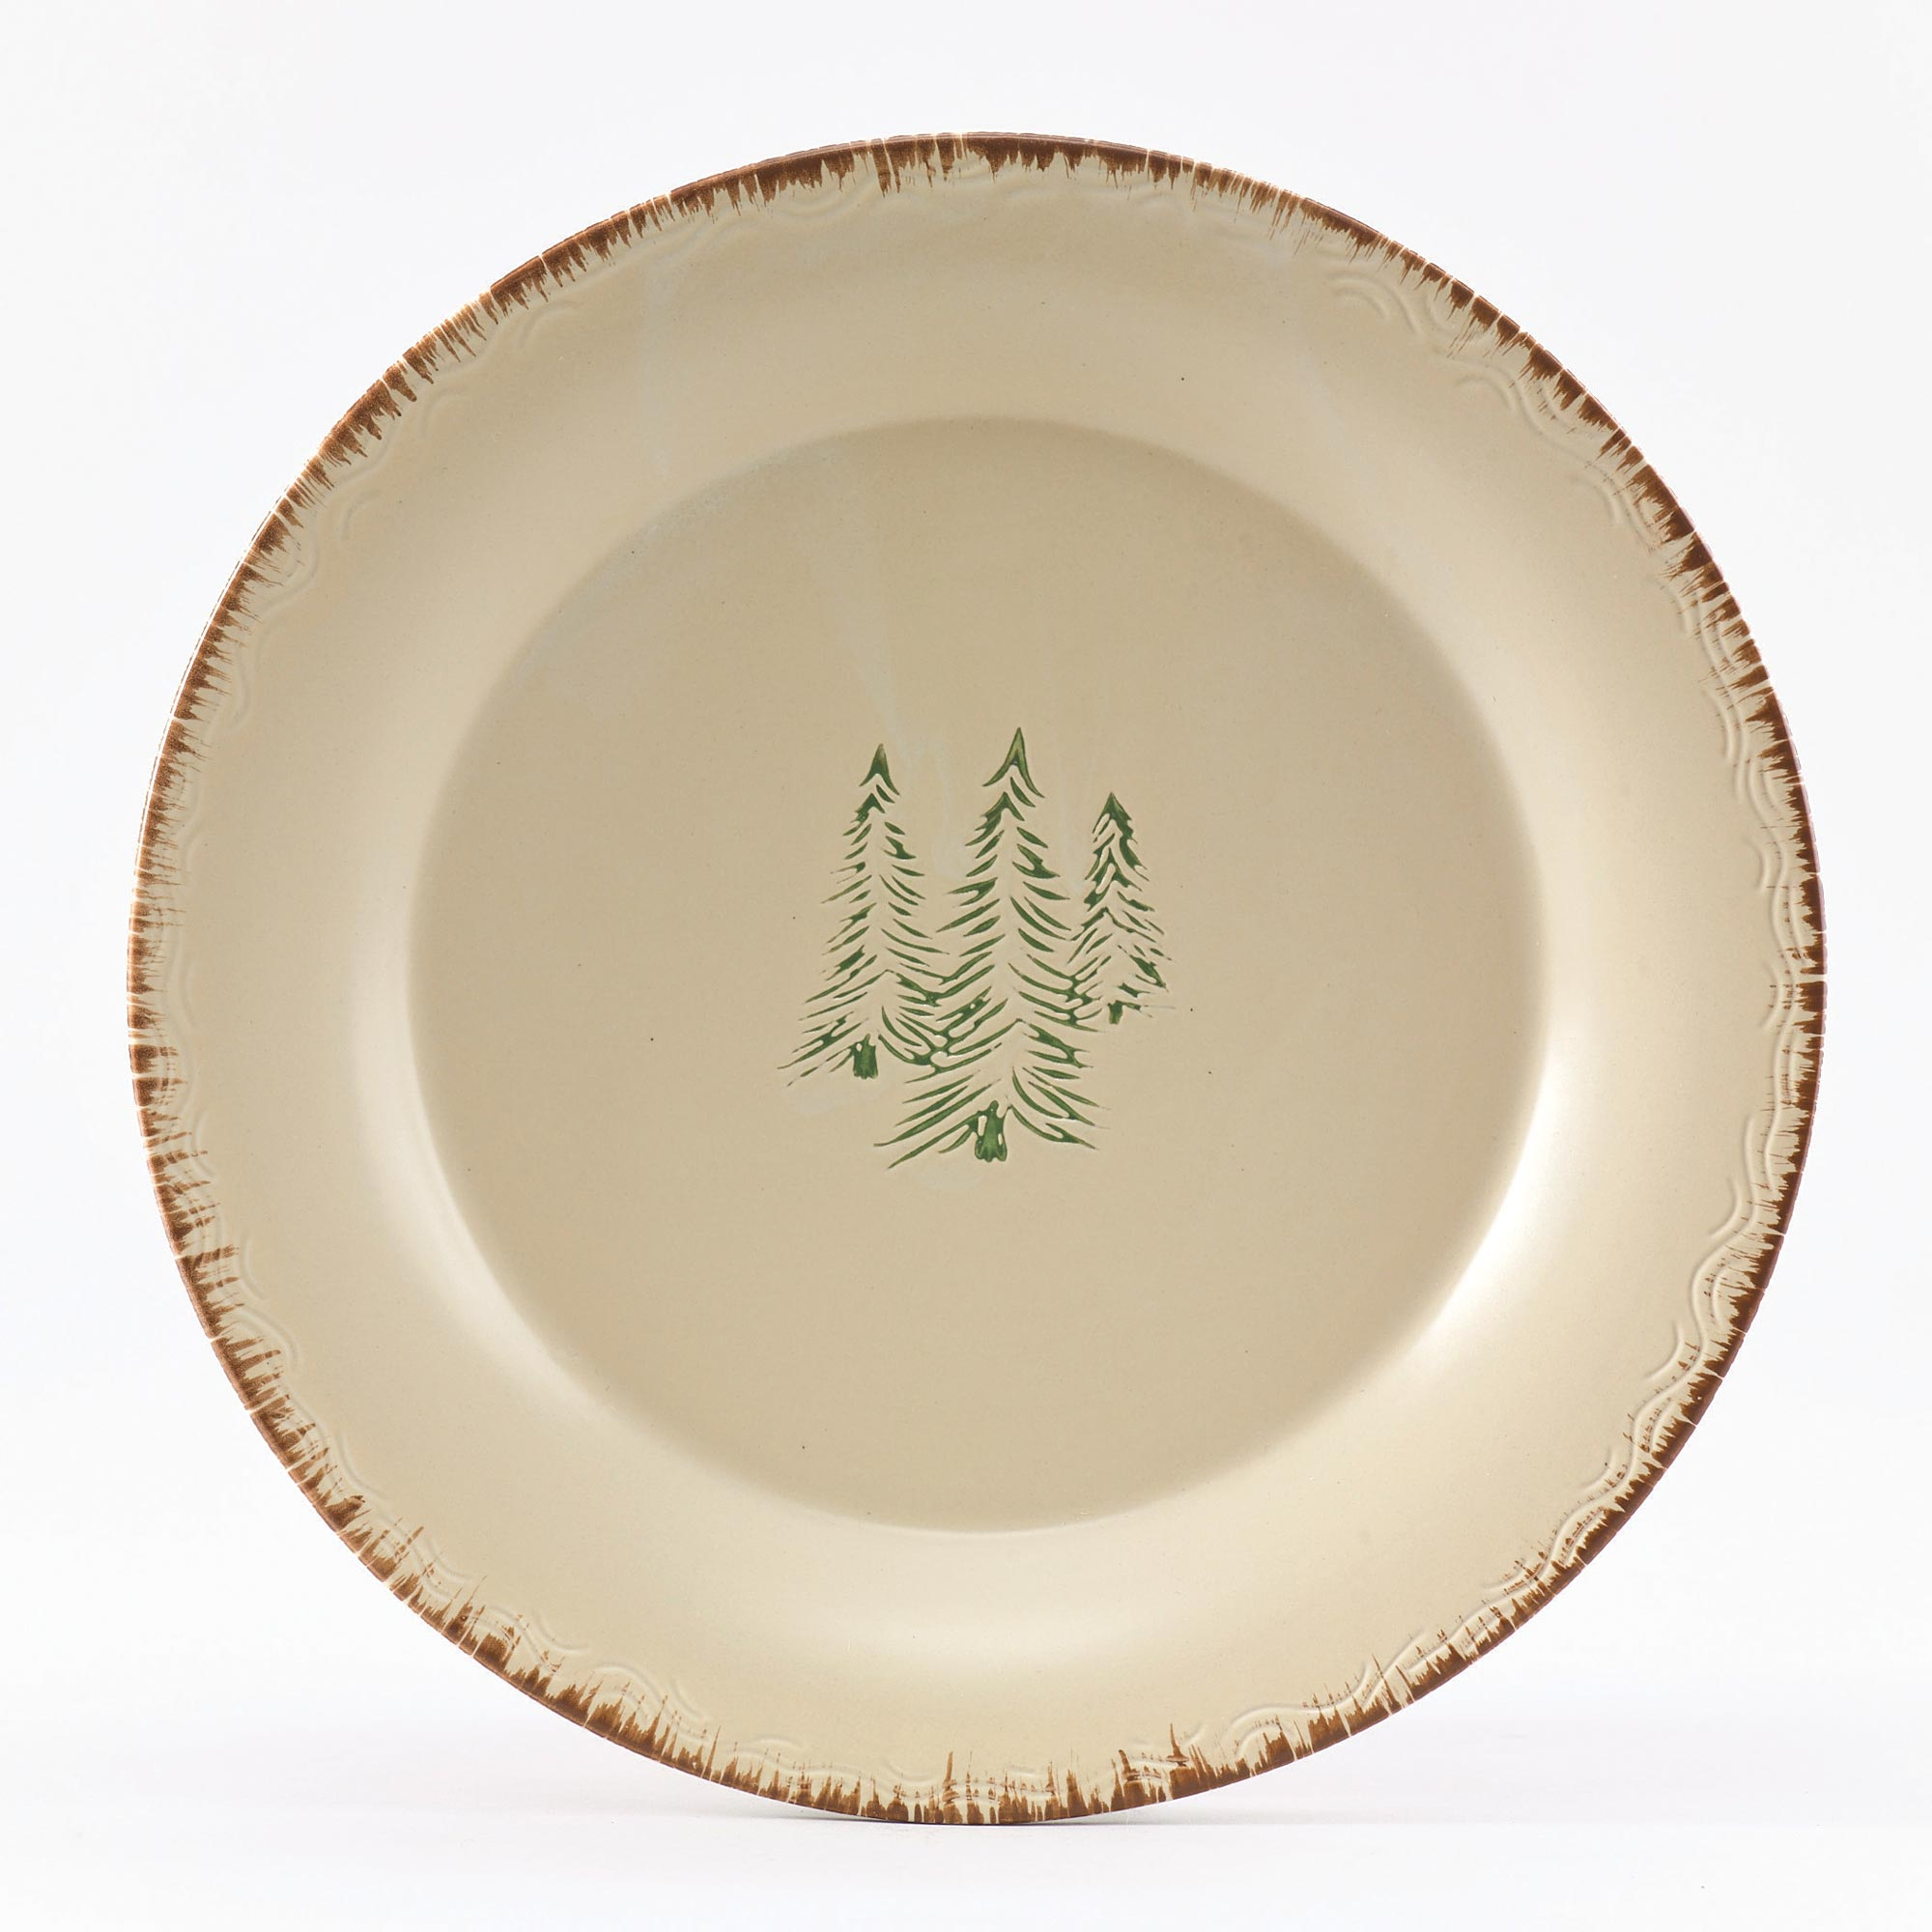 PKD-493-650-Rustic-Retreat-Dinner-Plate-Set-LRG